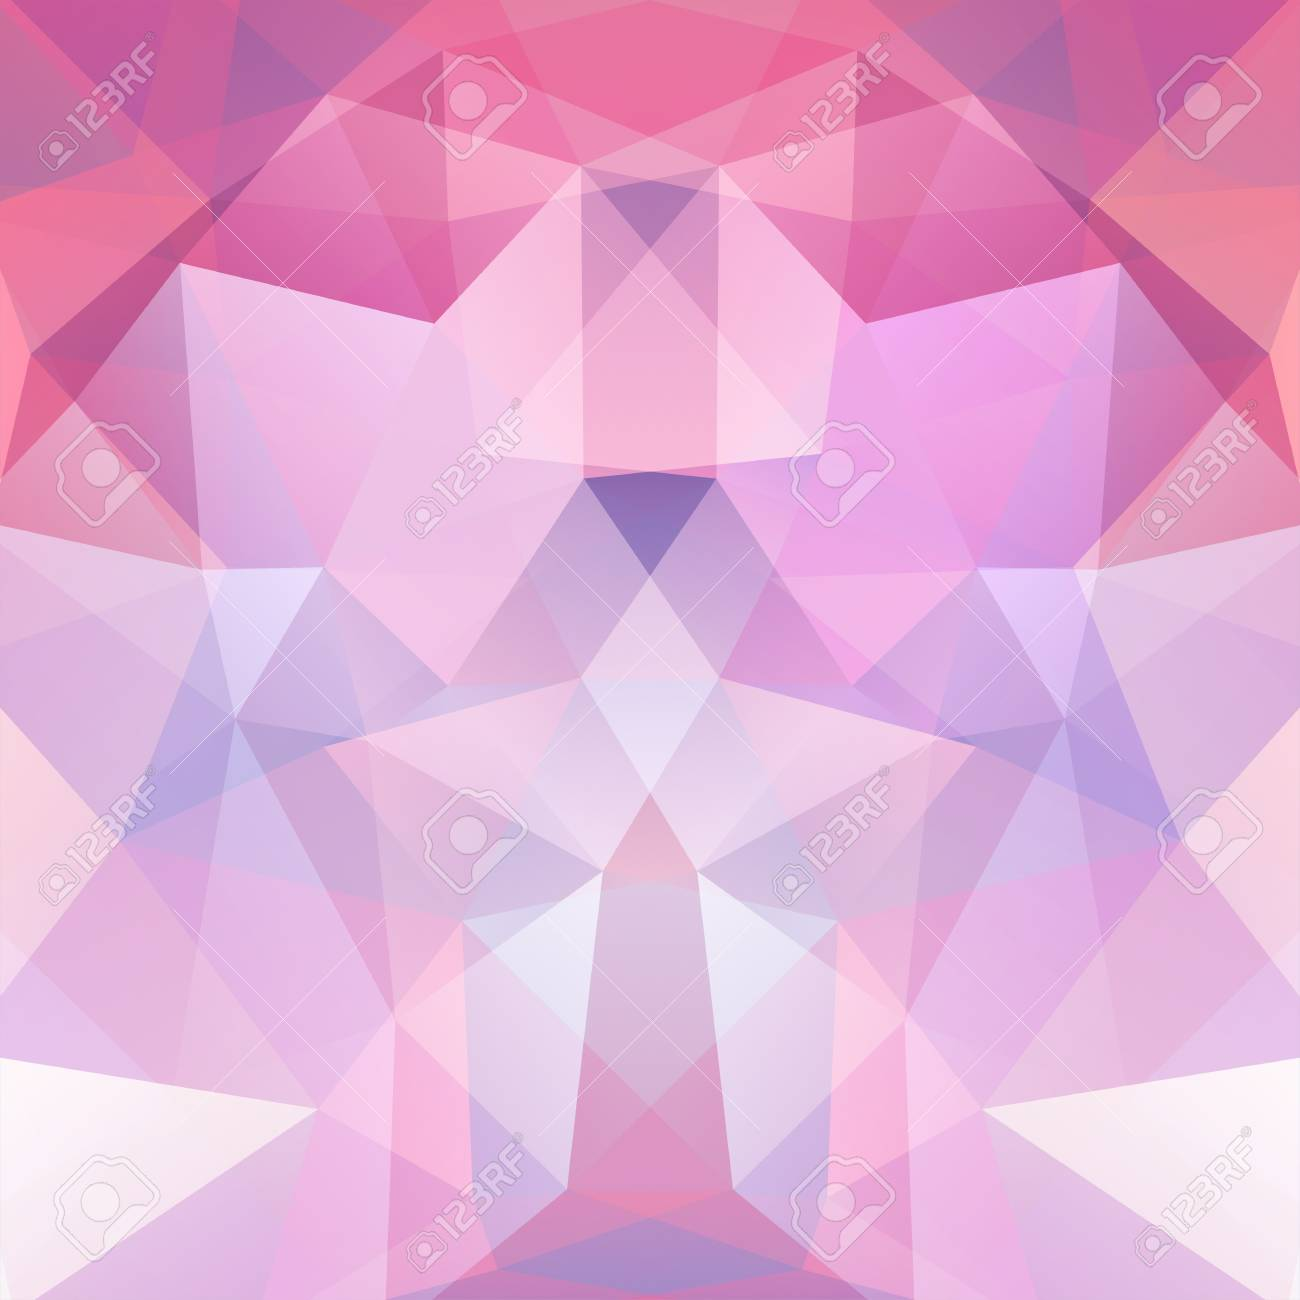 abstract background consisting of pastel pink triangles geometric